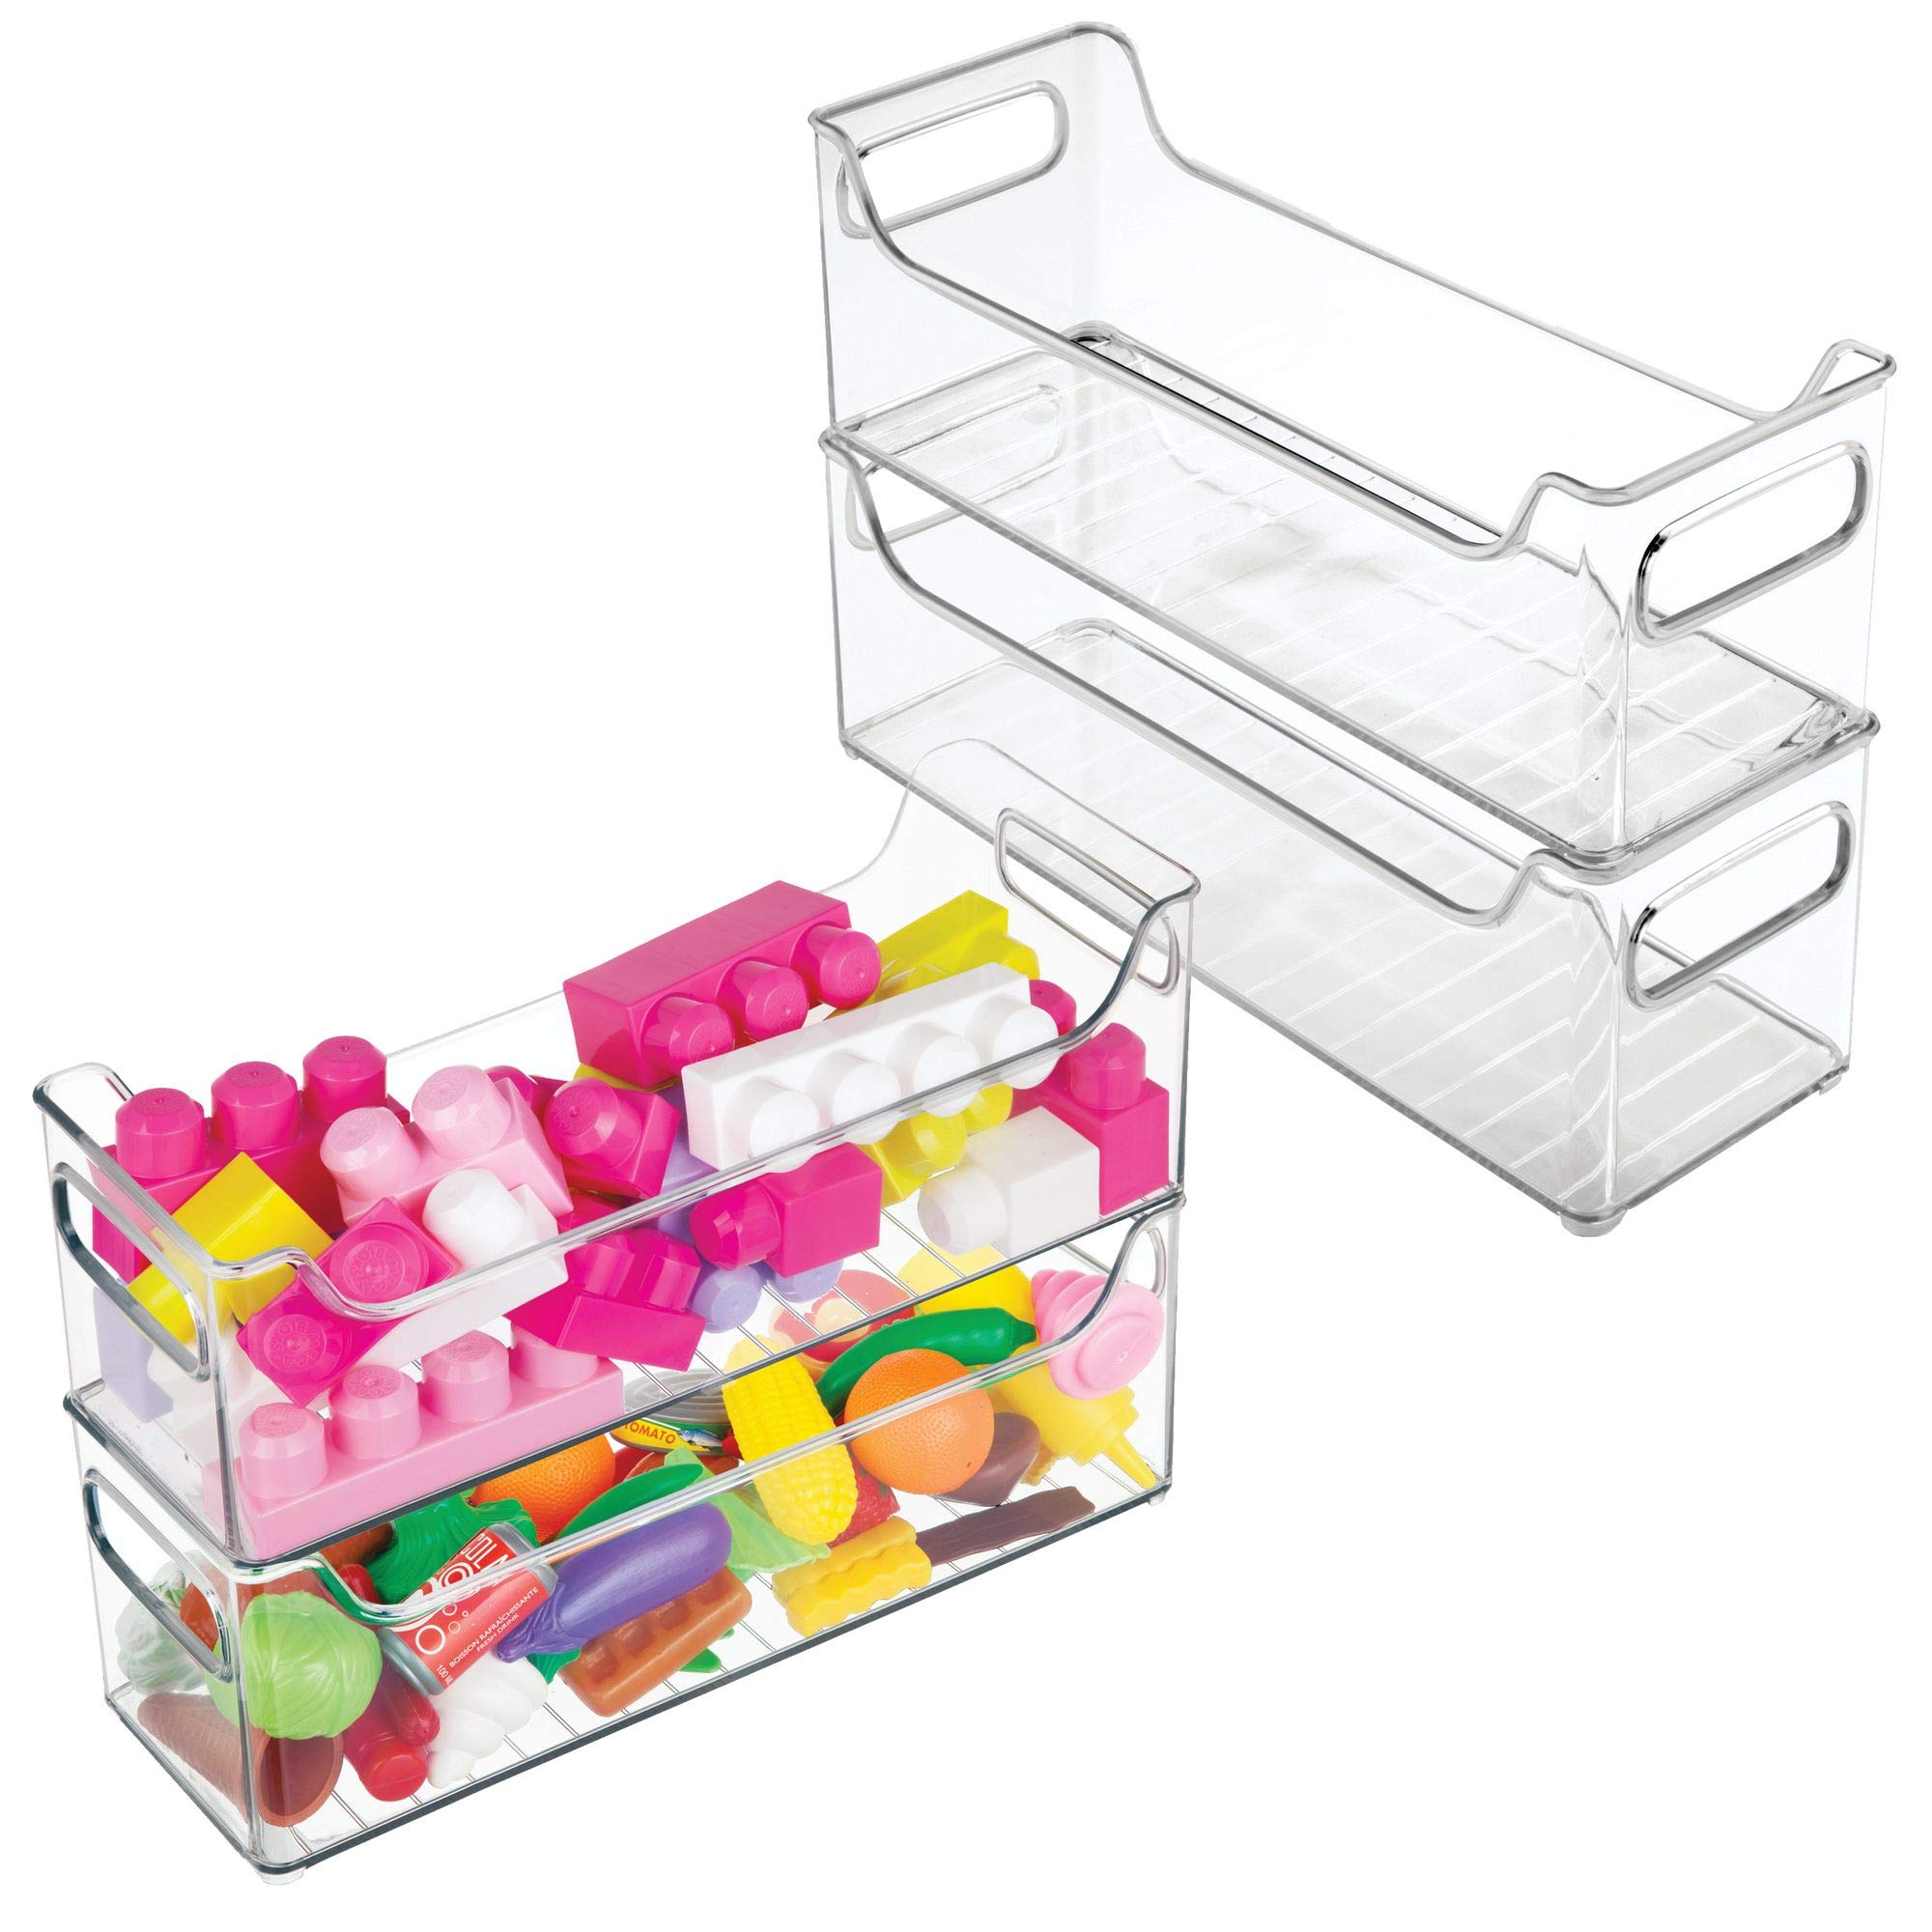 mDesign Plastic Kids Baby Cat Dog Toys Storage Organizers Bins Totes Baskets for Action Figures, Crayons, Legos Puzzles Wood Blocks Stuffed Animals - Set of 4 - 5'' x 5'' x 14.5'', Clear